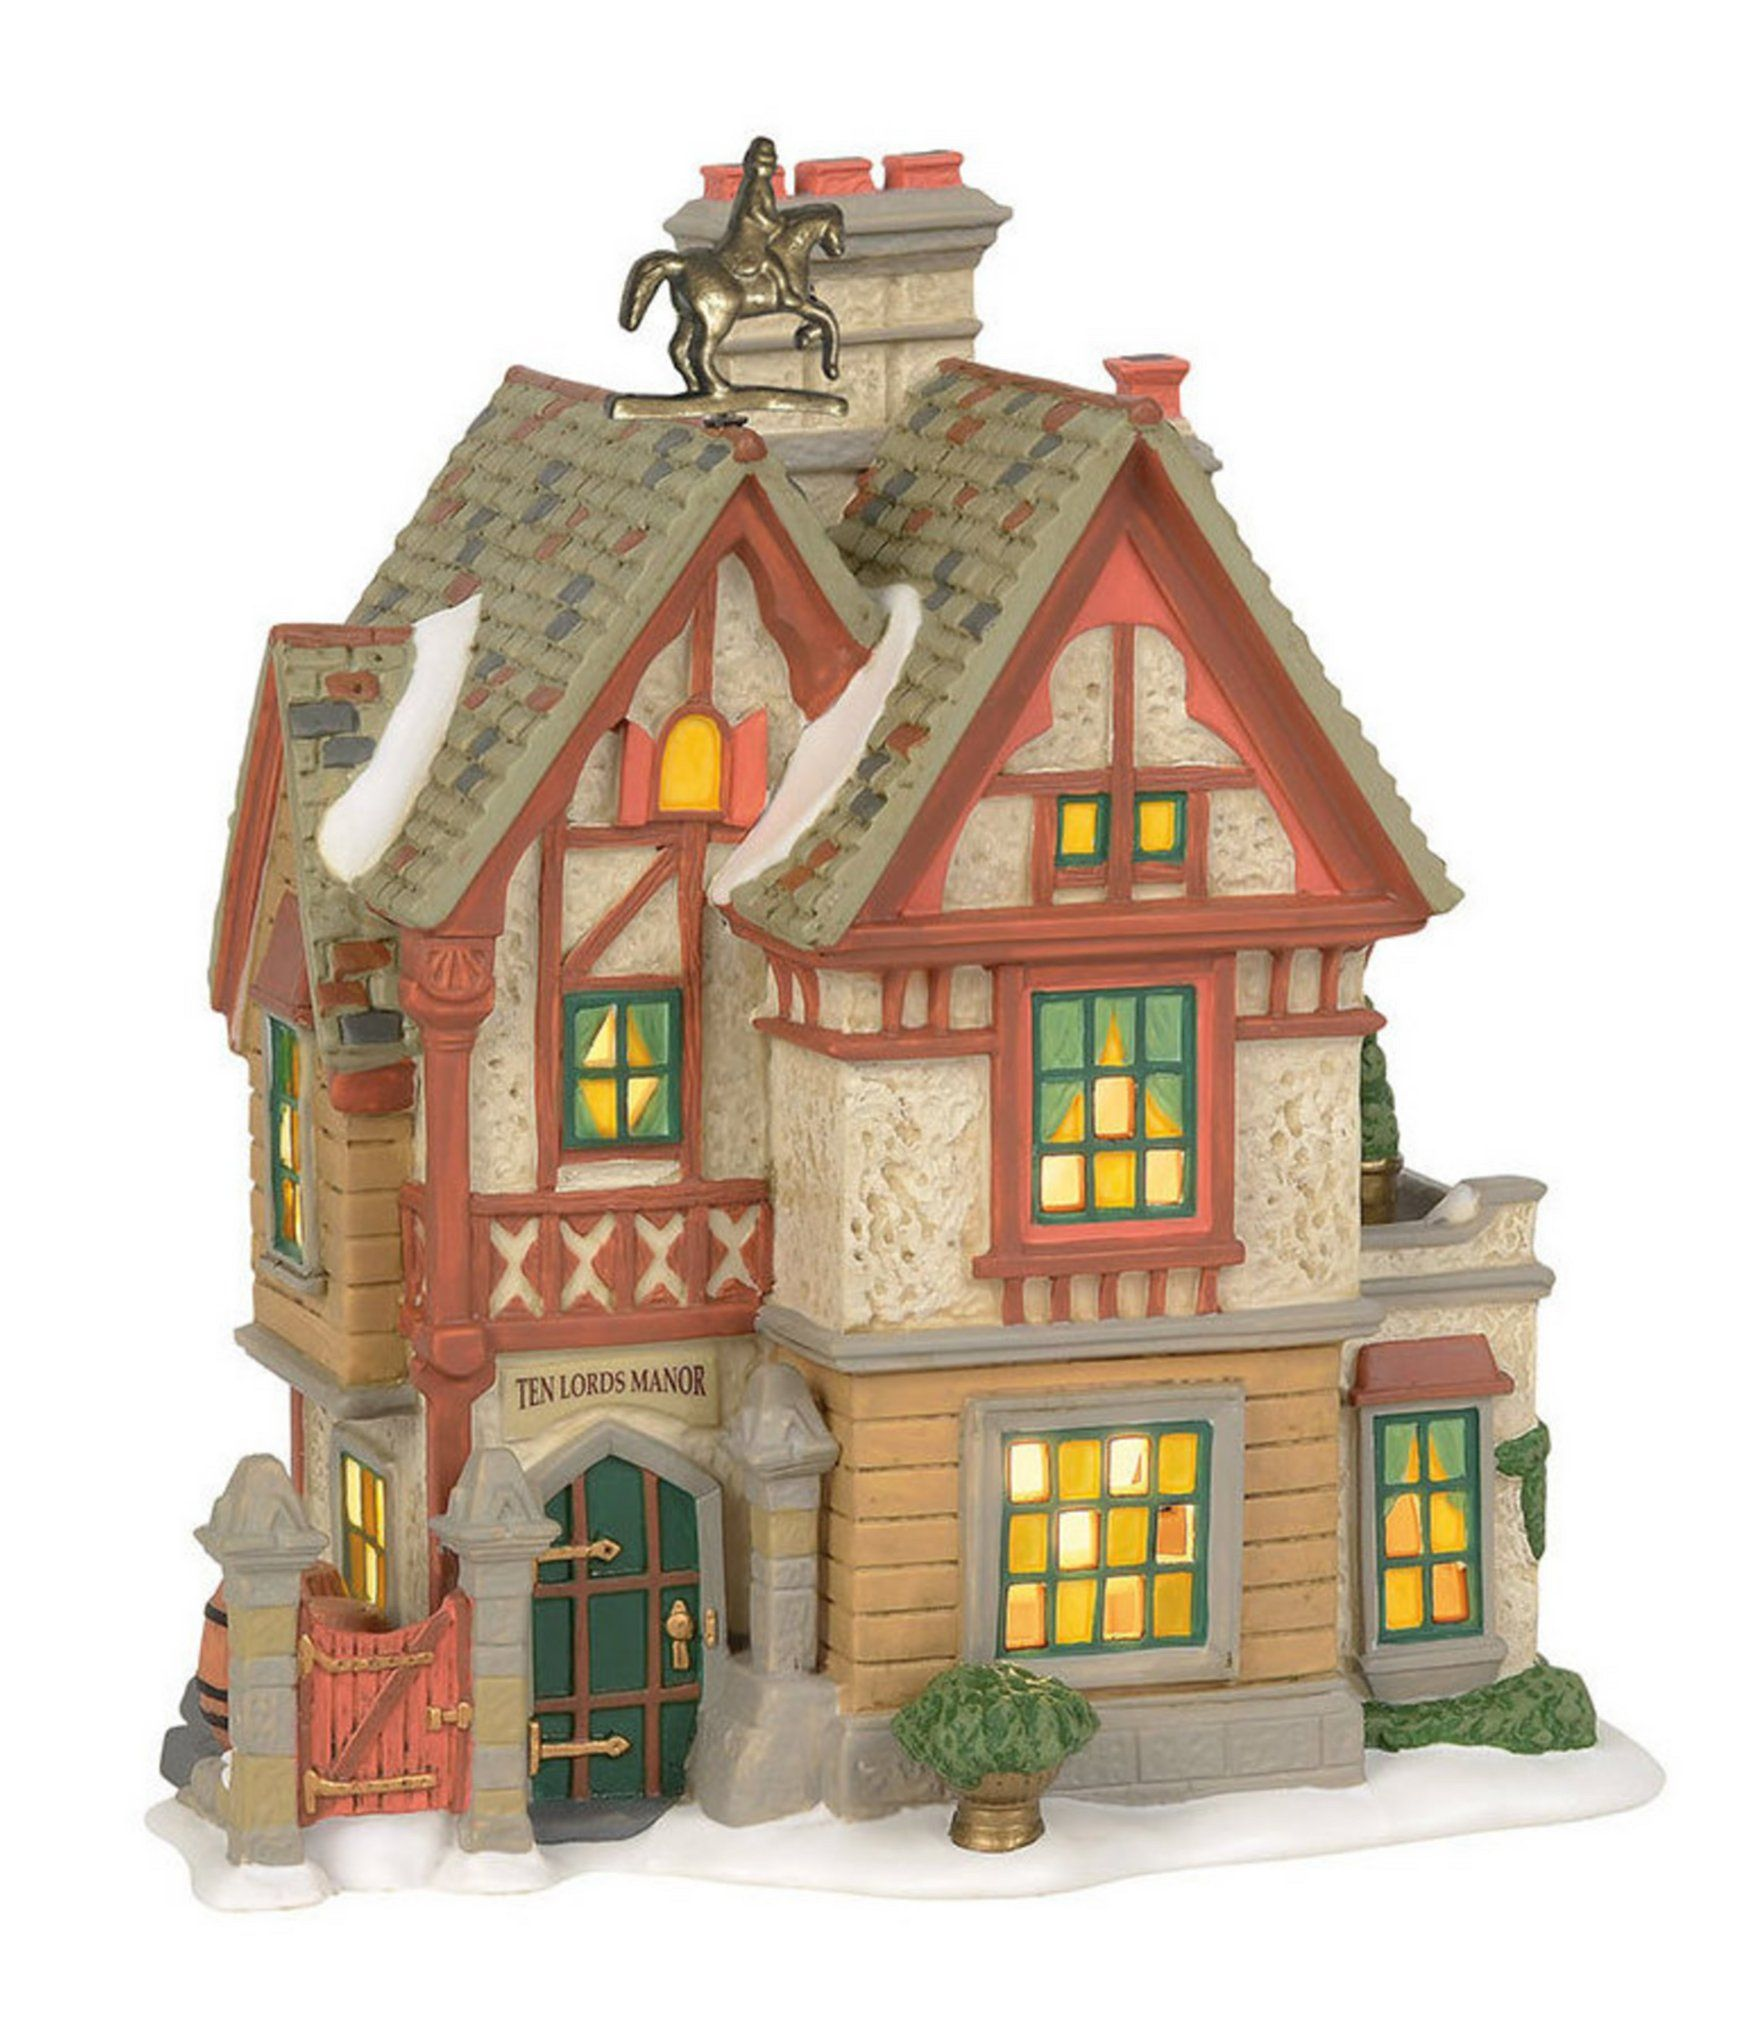 Department 56 Dicken's Village Ten Lords Manor | Dillard's #department56